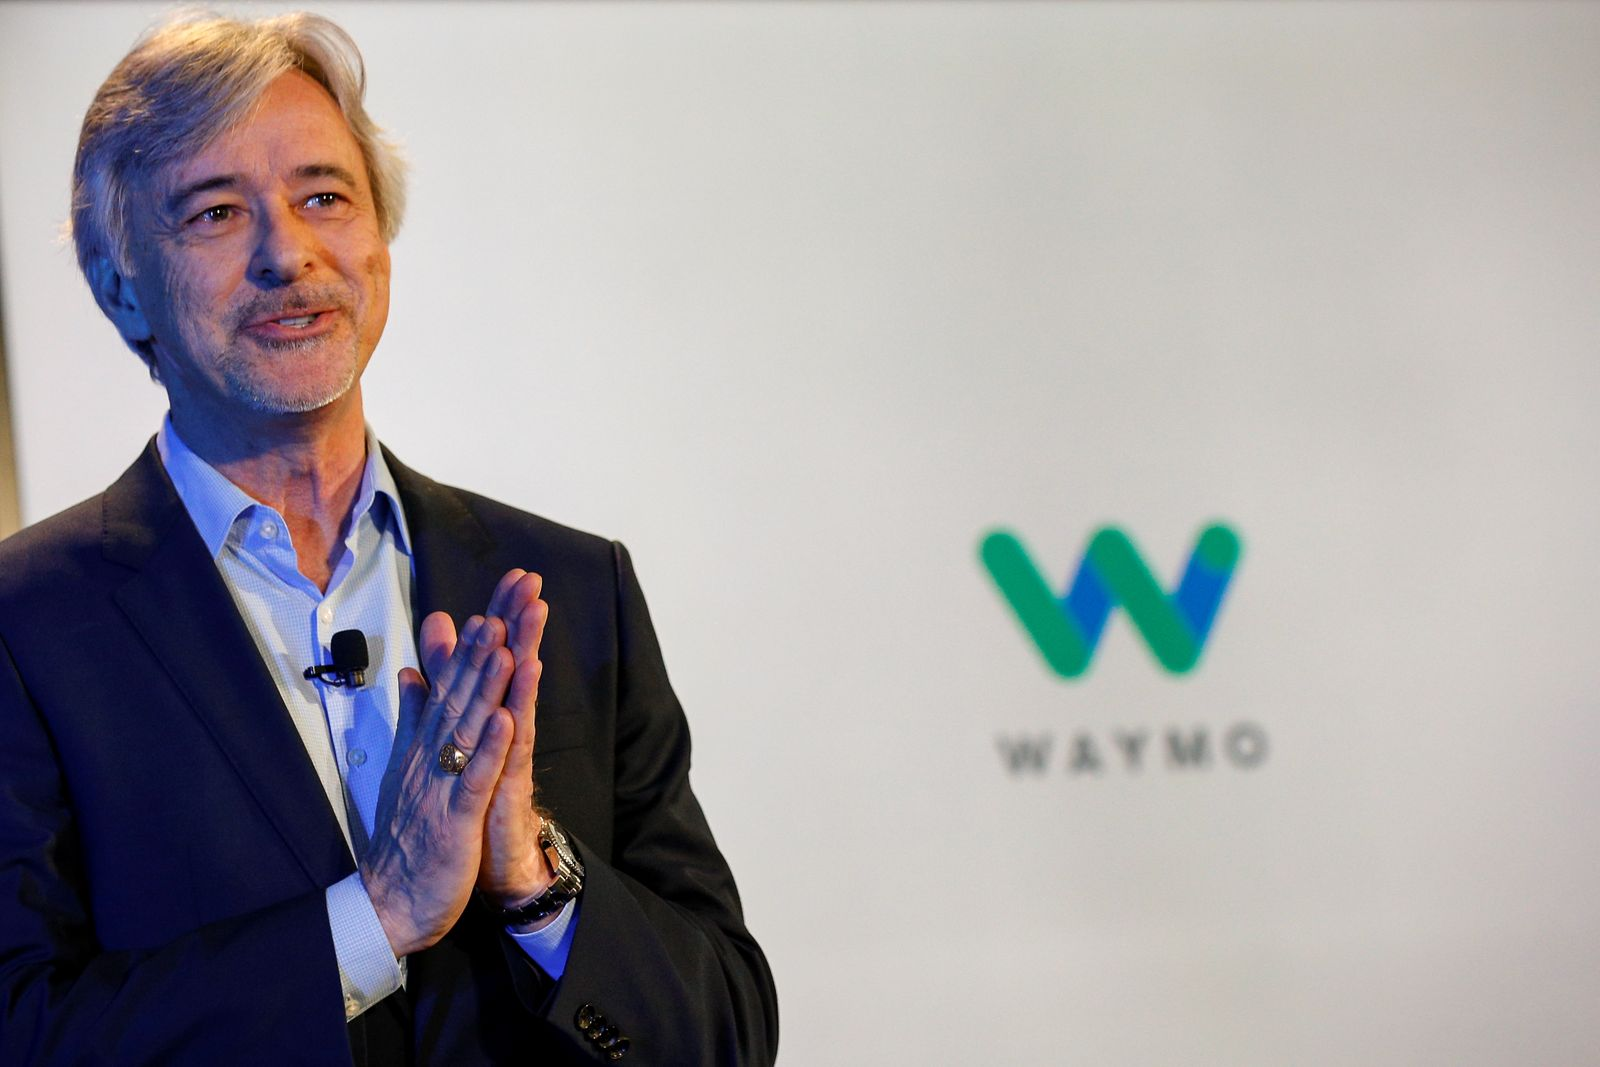 Waymo CEO John Krafcik talks during an unveiling of the Jaguar I-PACE self-driving car by Waymo in the Manhattan borough of New York City